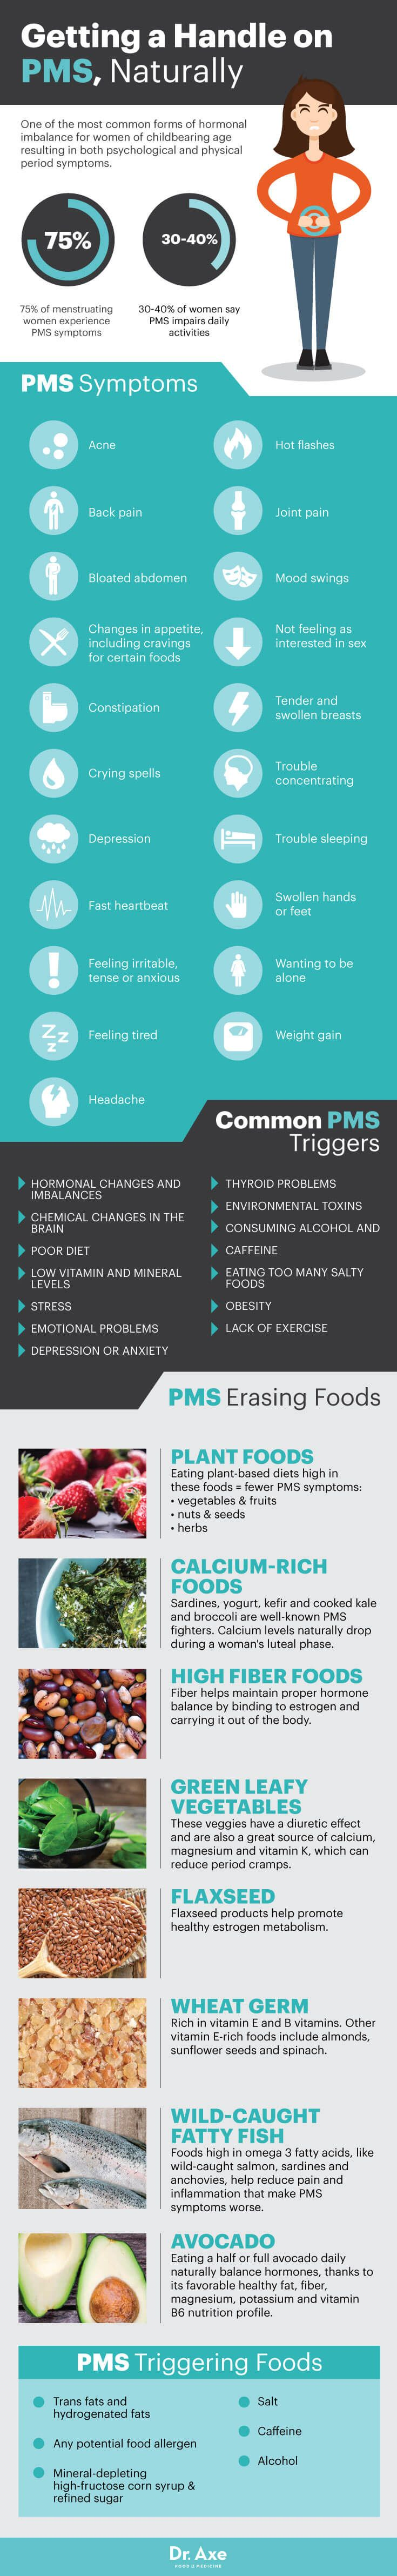 Foods that Trigger PMS Symptoms